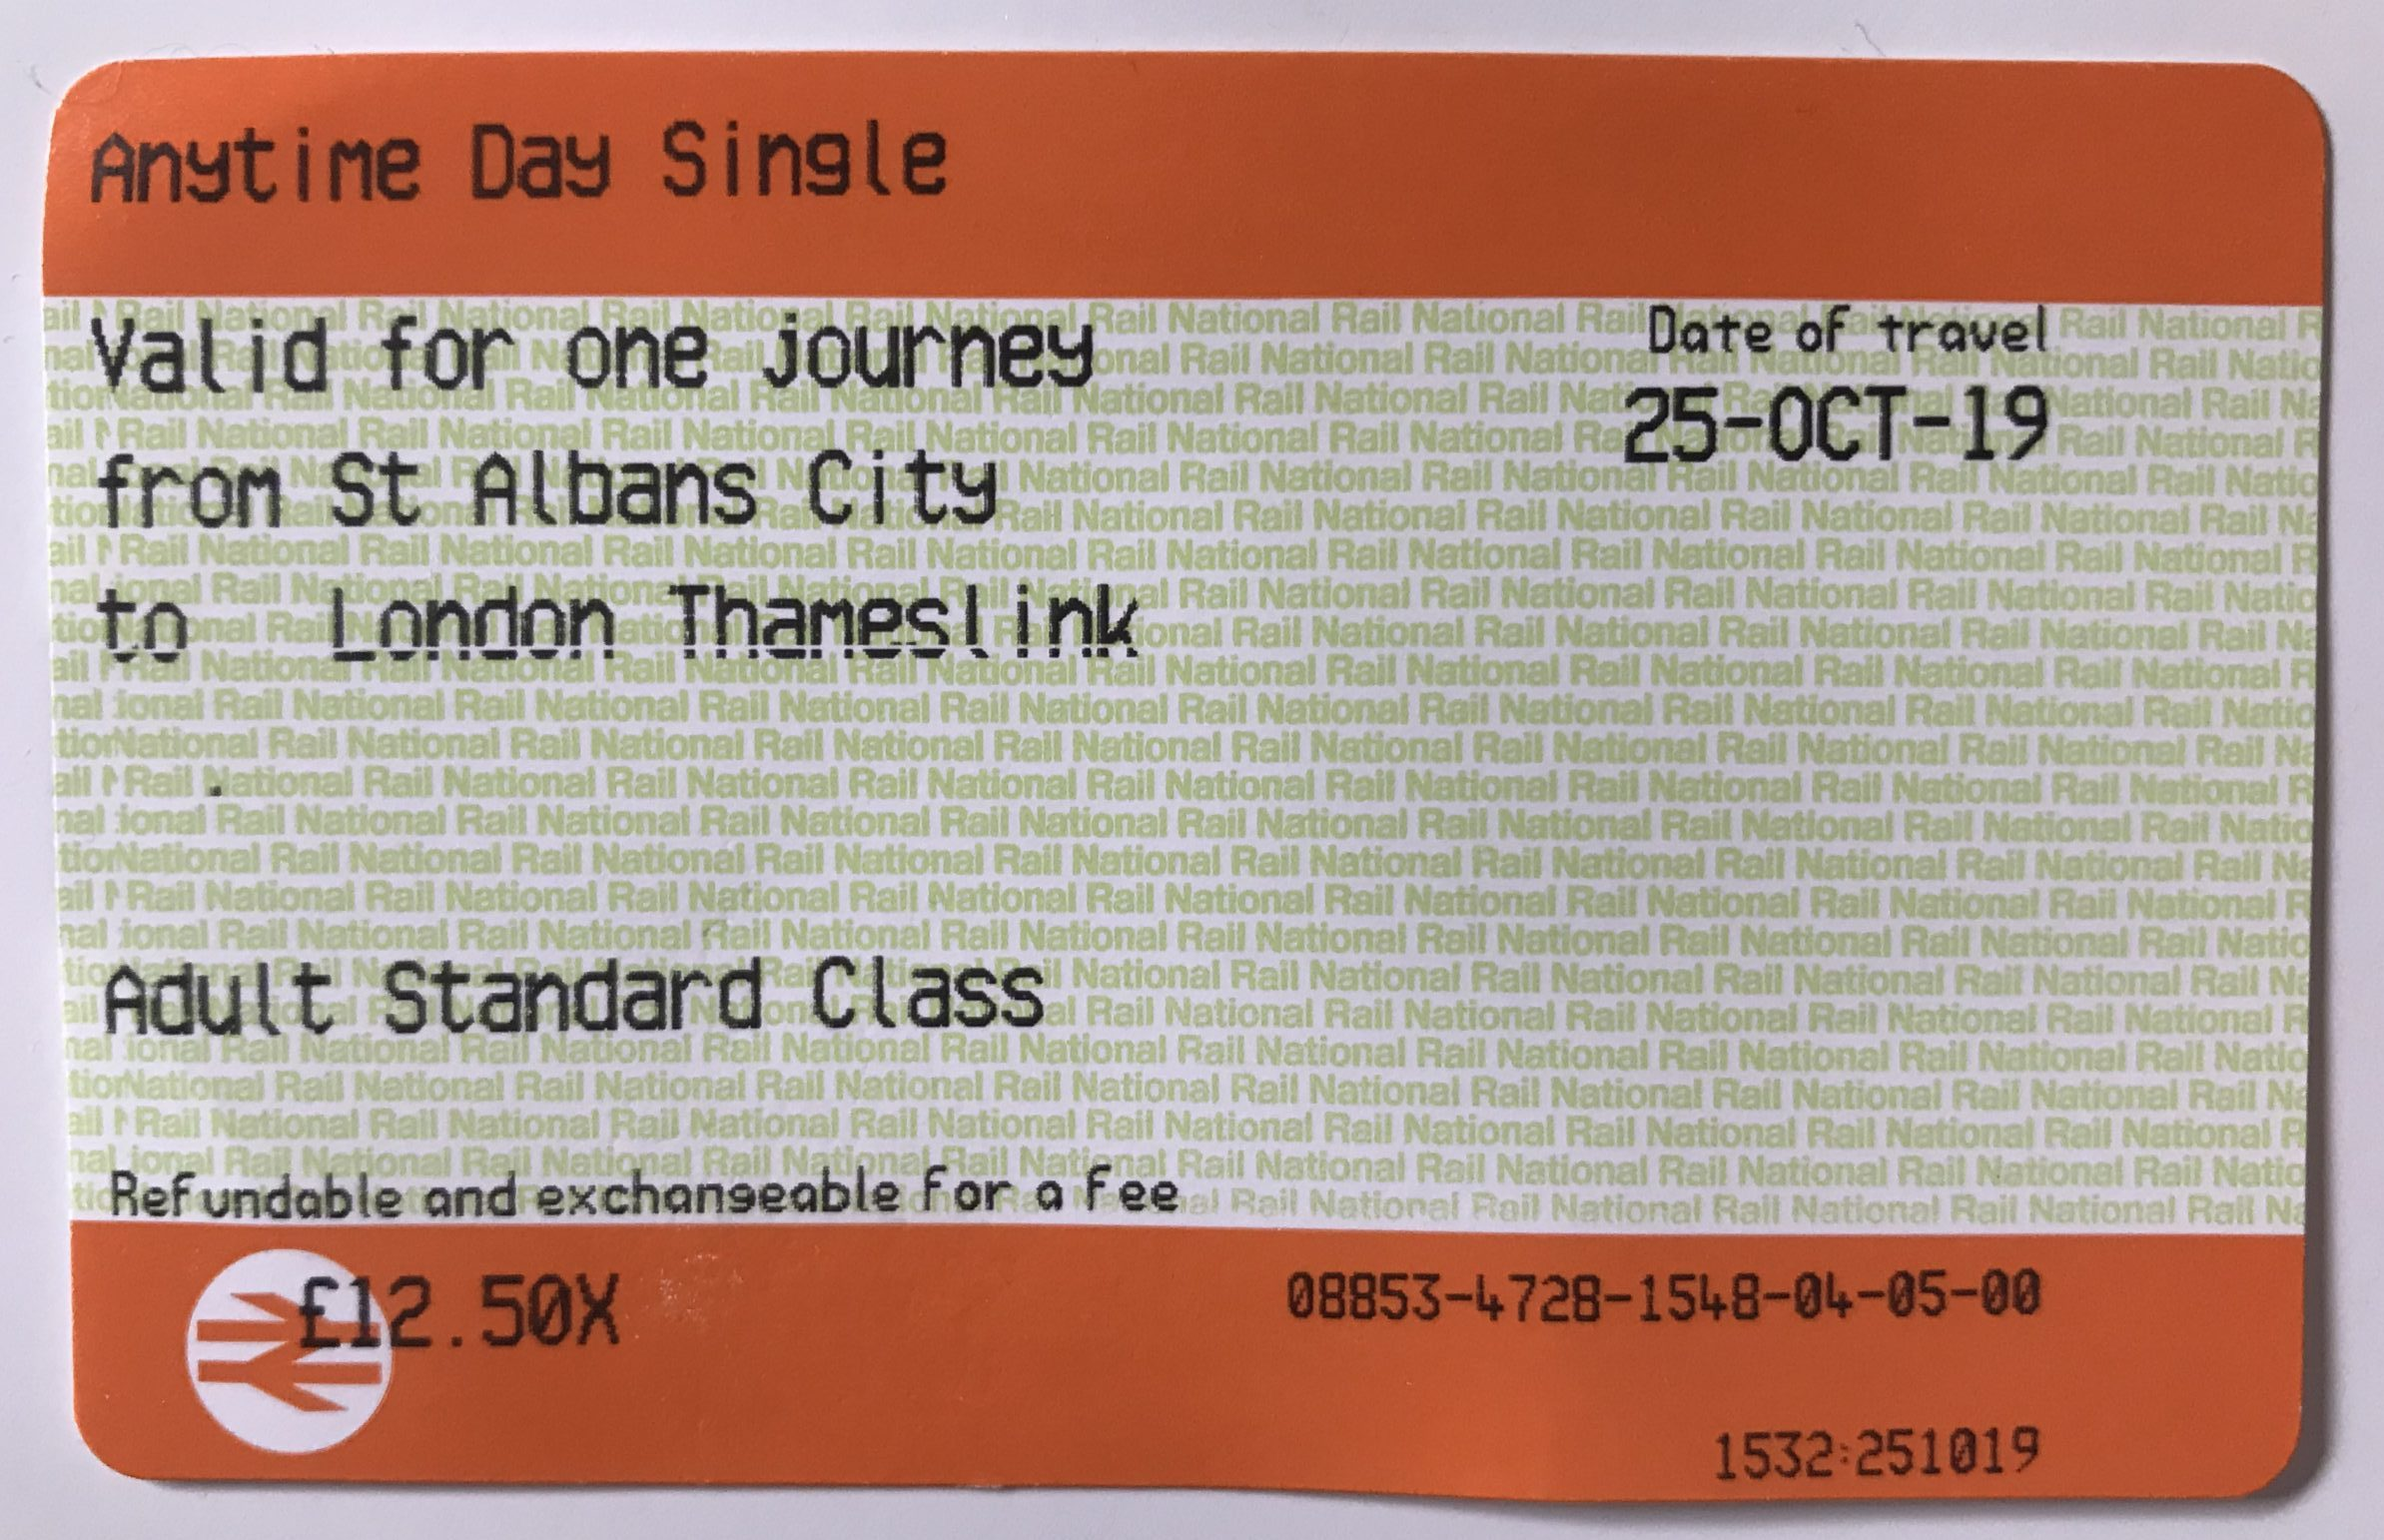 Anytime Day Single Ticket of National Rail